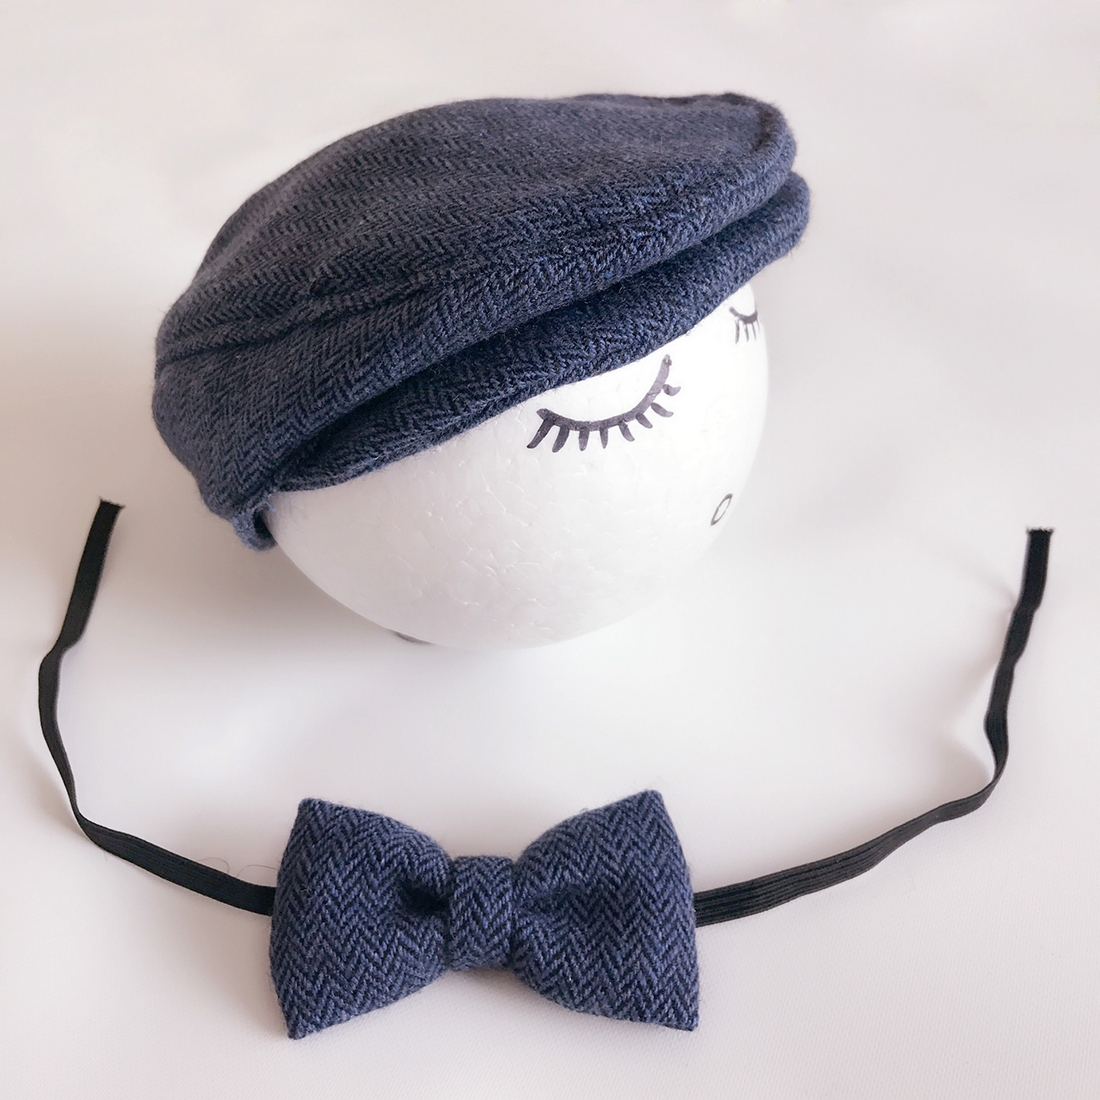 Newborn Baby Photography Props Photo Shoot Outfits Infant Cap Cabbie Hat with Bowtie Set Deep Blue. ALA0000D_1.jpg; ALA0000D.jpg ...